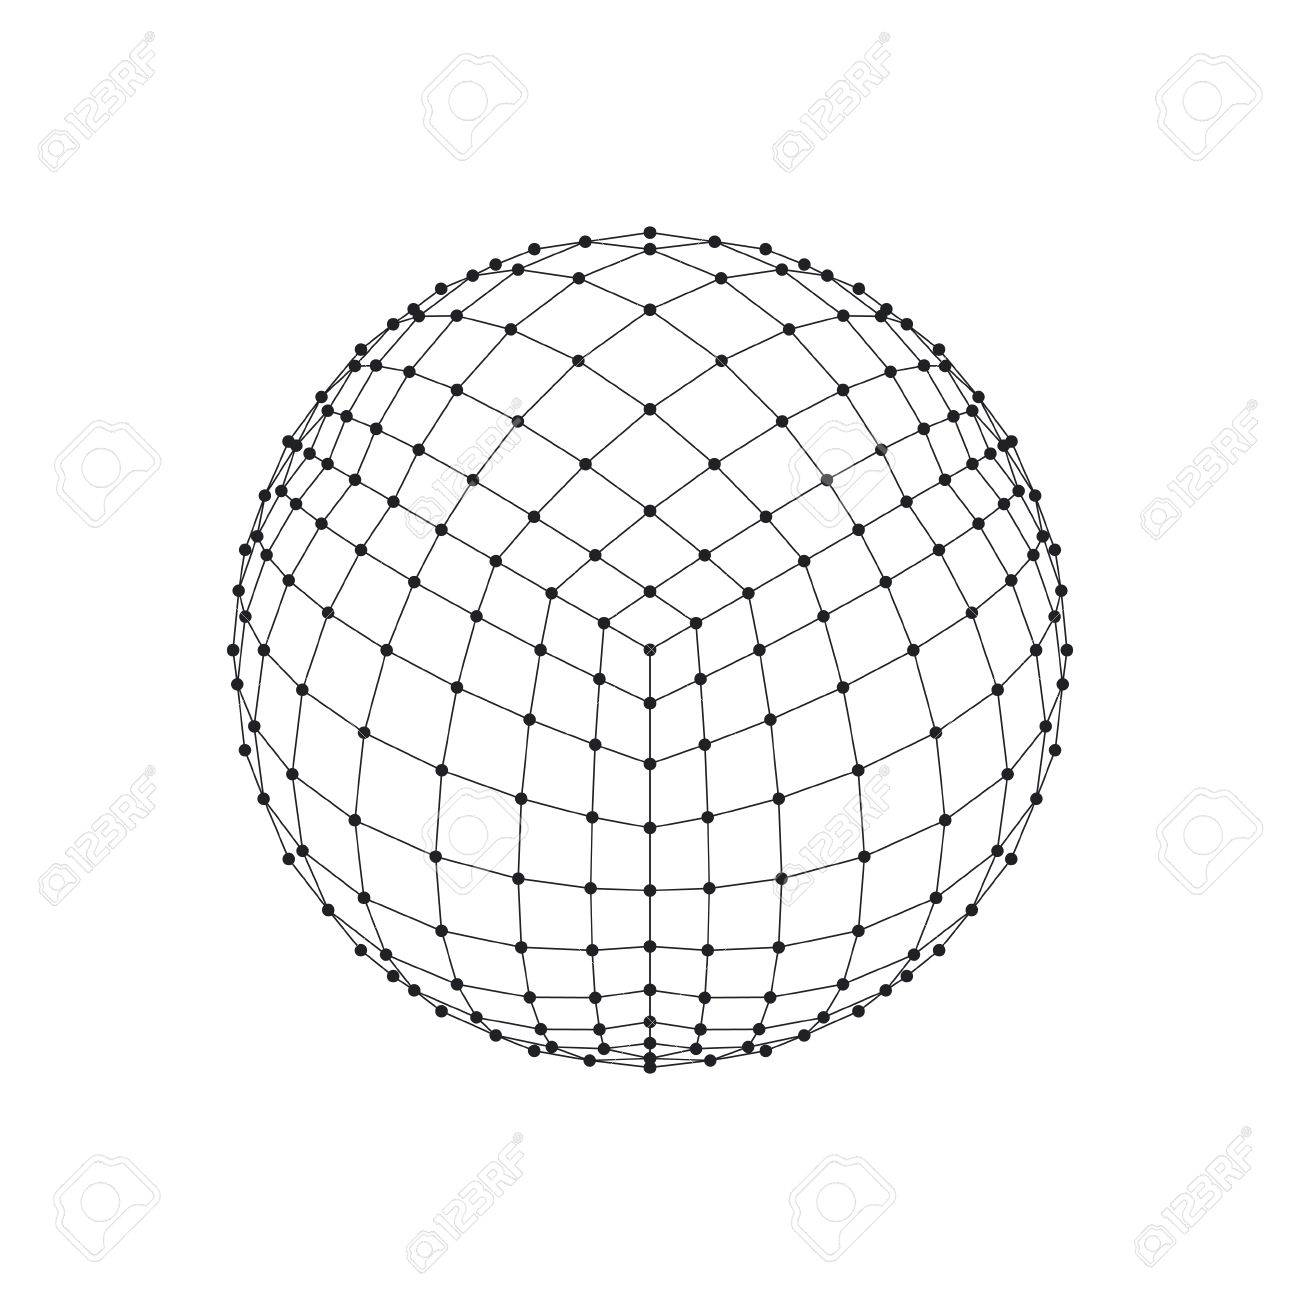 3d Sphere Drawing